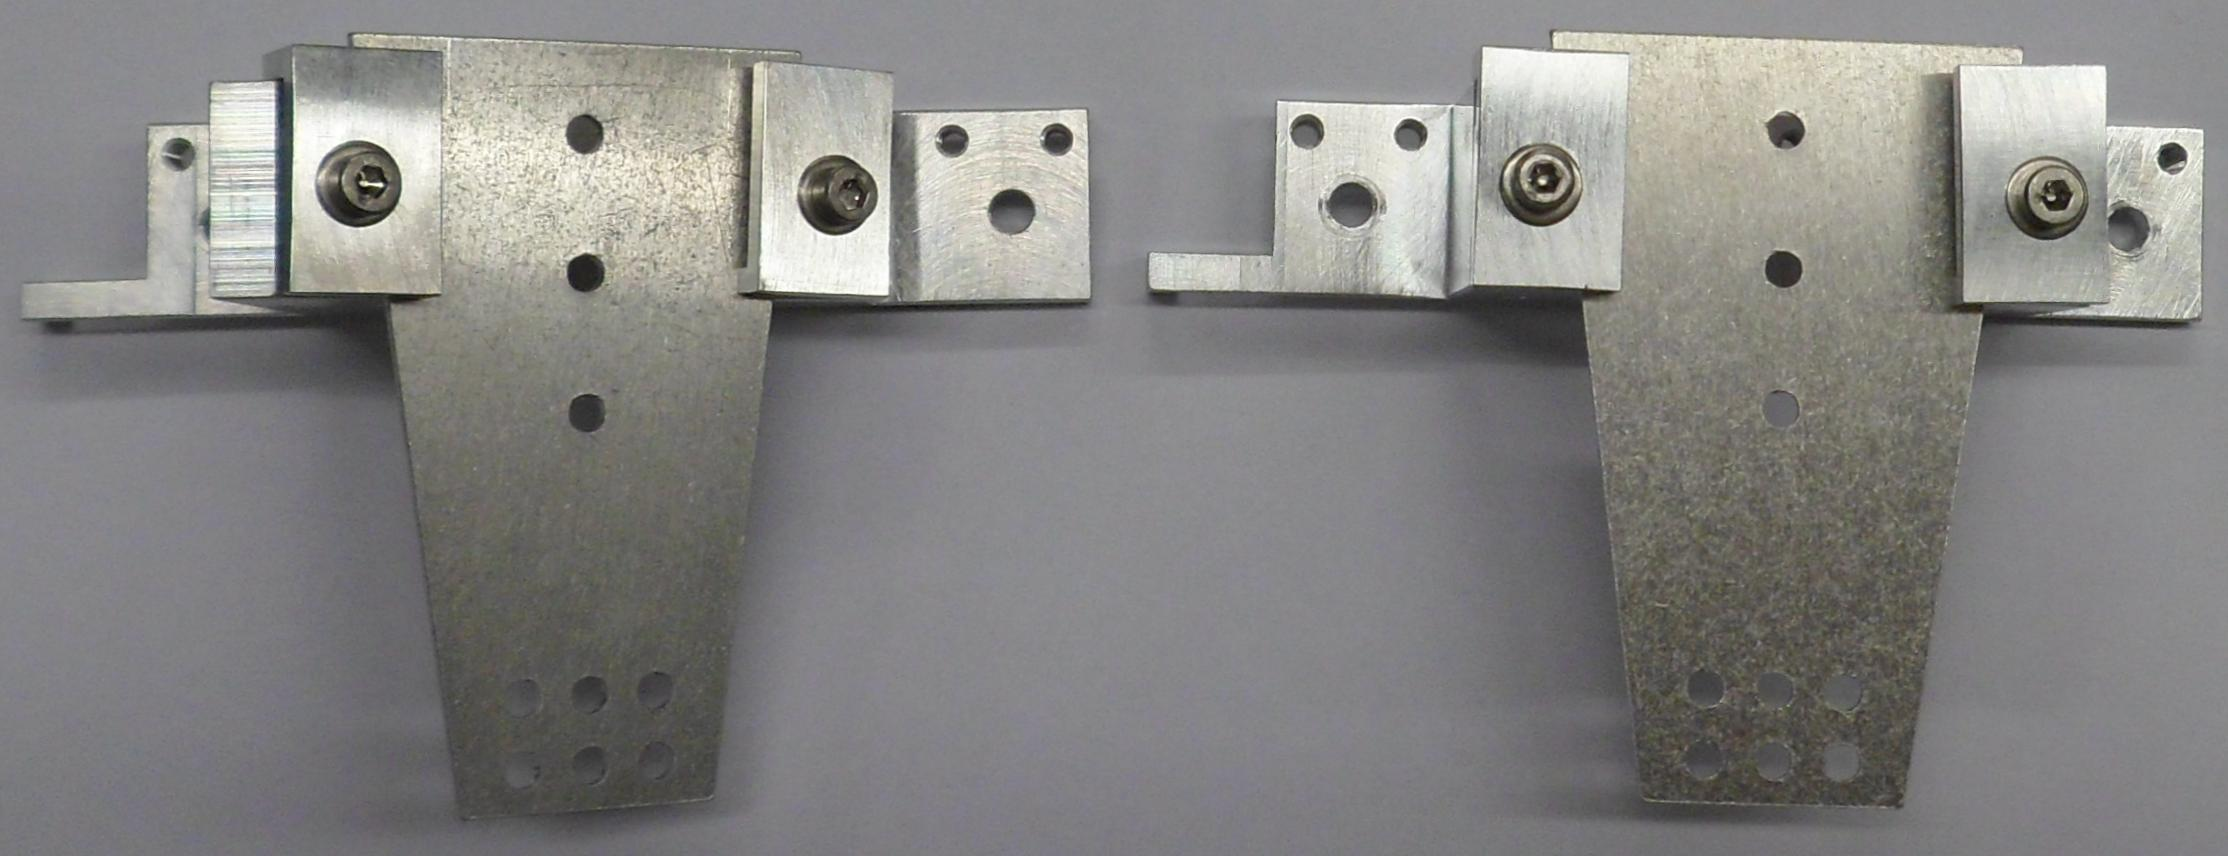 High-stability sample mount with thick sample plates mounted at (left) 30° yaw and (right) flat orientations.